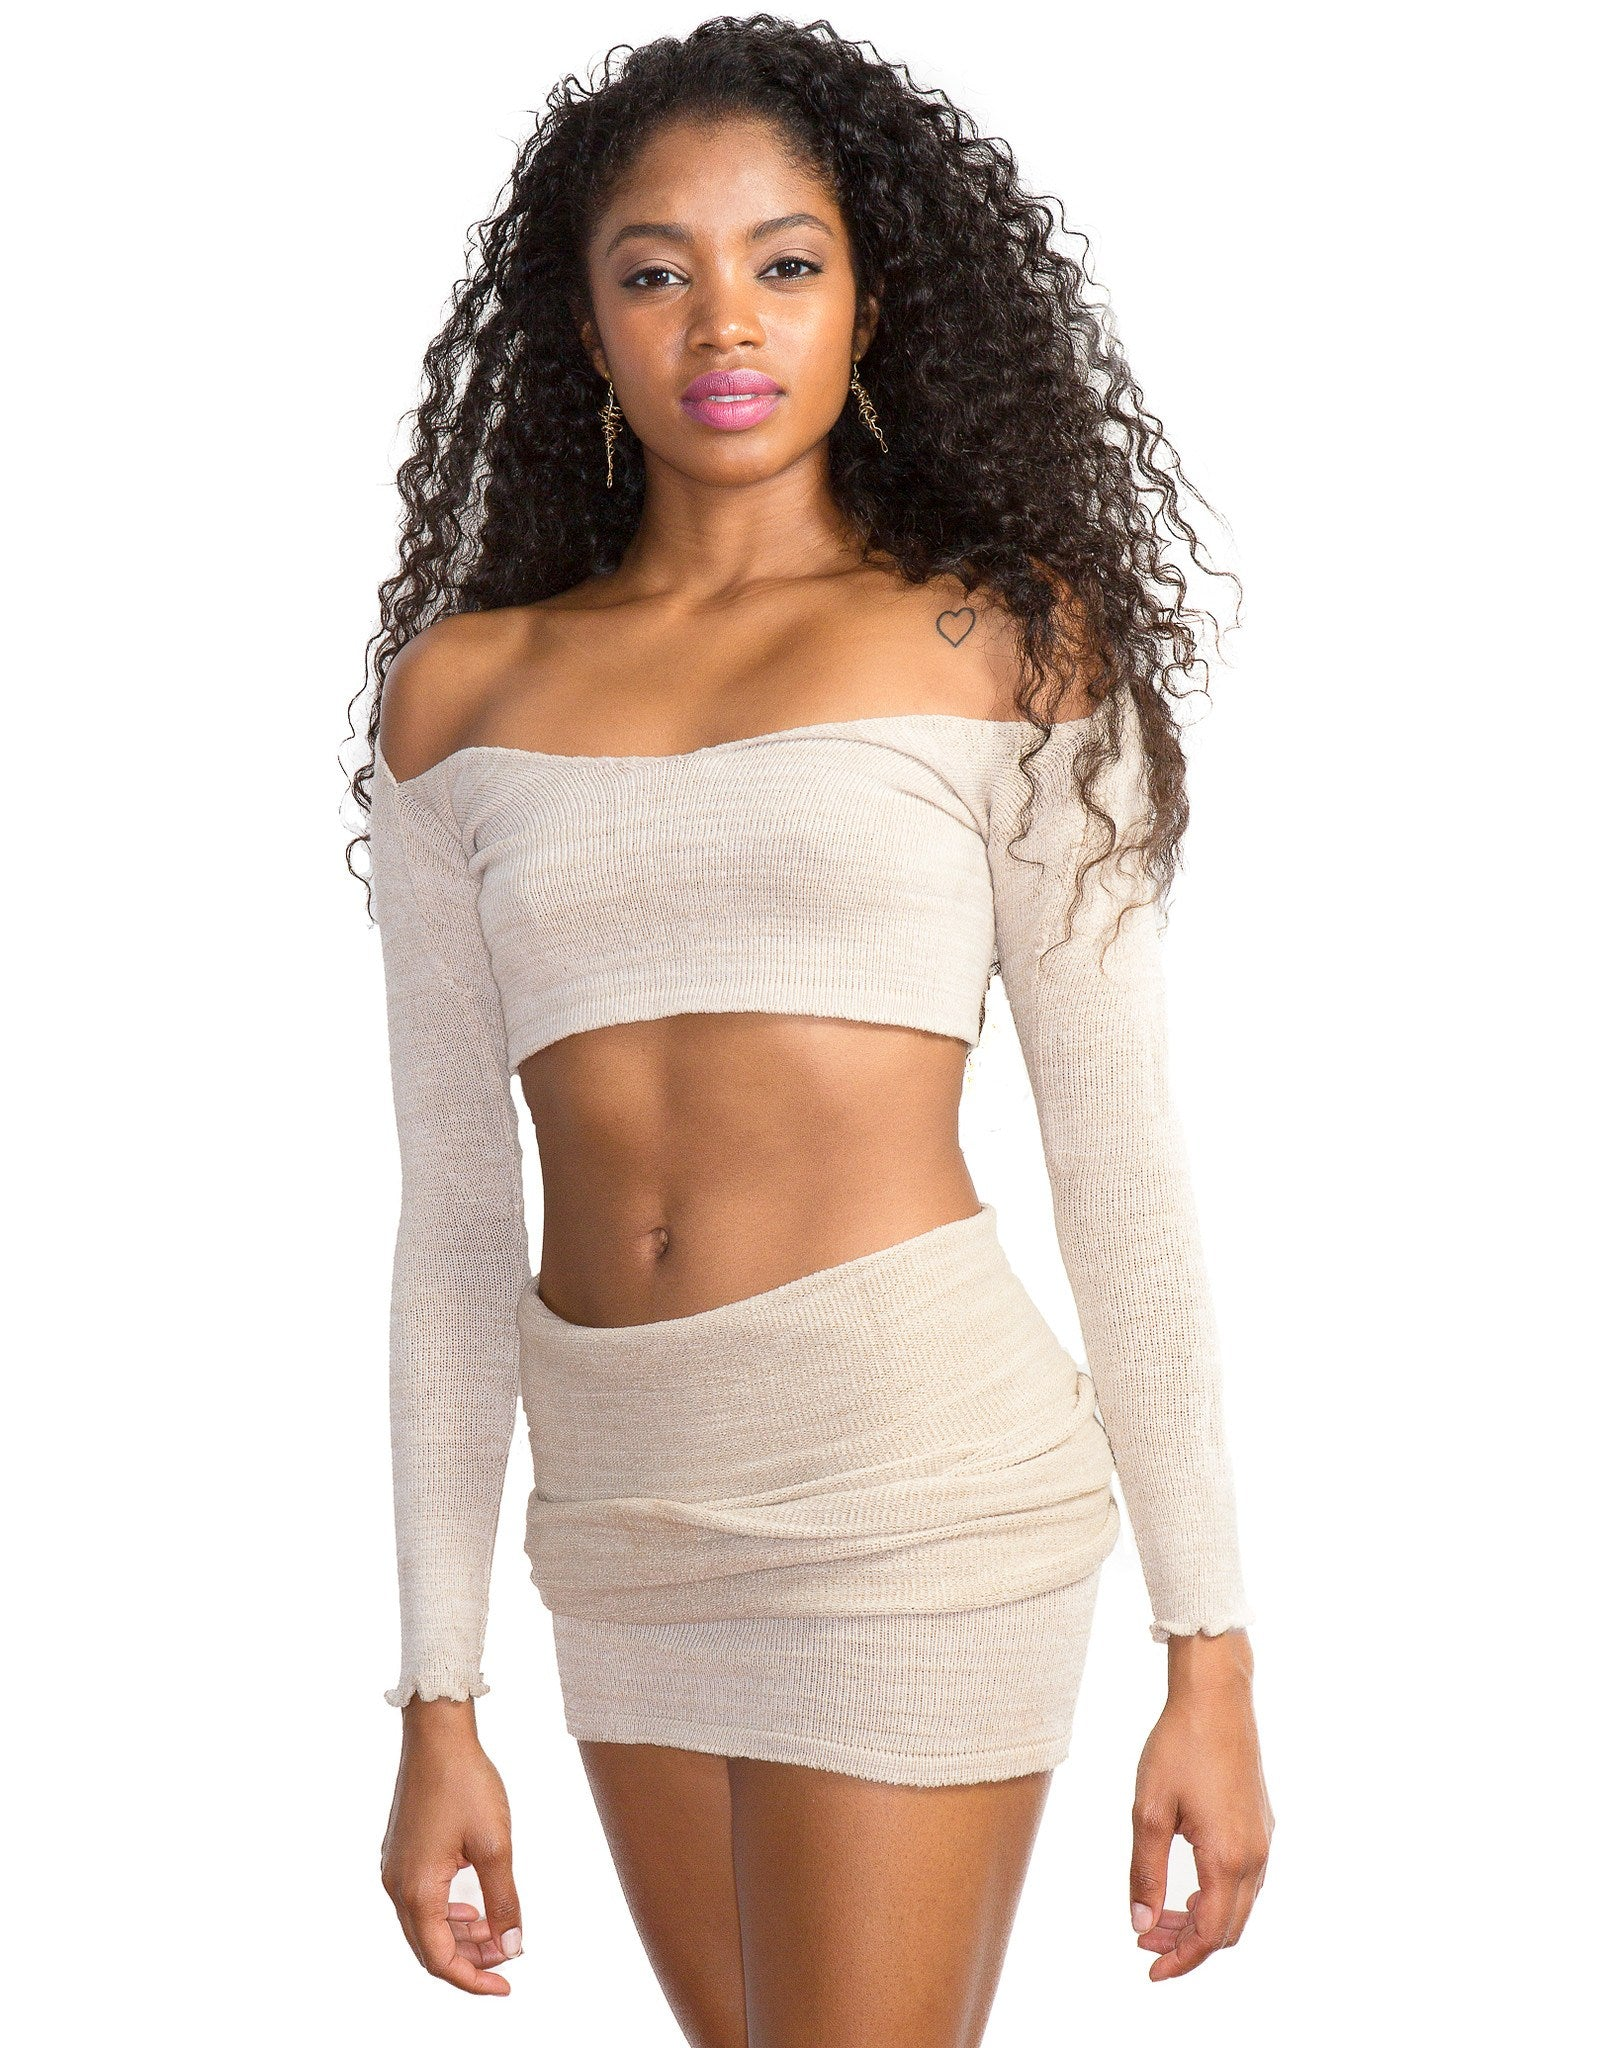 Sexy Sweater Dress Set Off The Shoulder Stretch Knit Crop Top & Knee High Tube Skirt by KD dance New York Cozy & Fashionable @KDdanceNewYork #MadeInUSA - 2